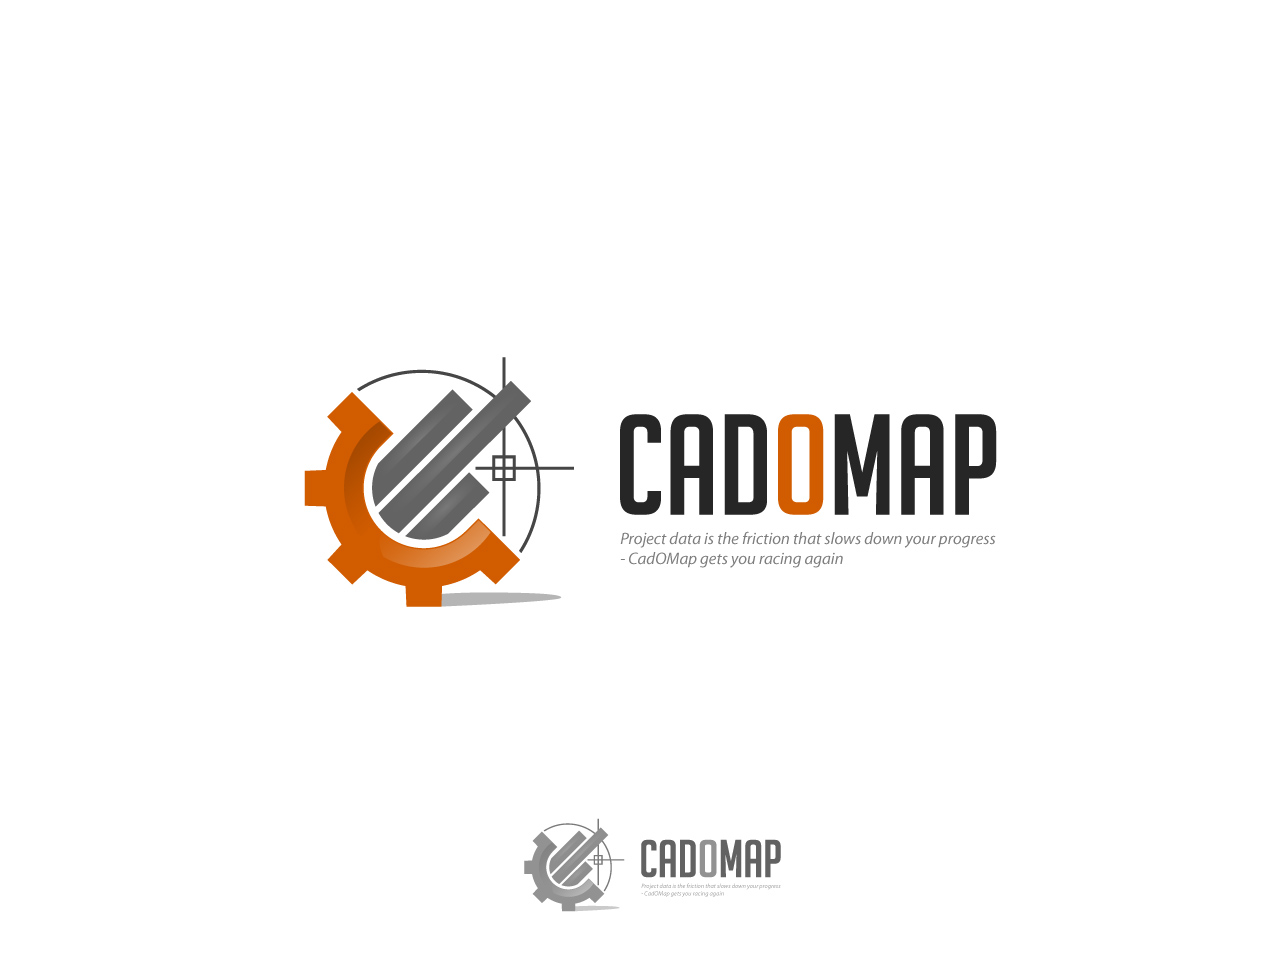 Logo Design by jpbituin - Entry No. 5 in the Logo Design Contest Captivating Logo Design for CadOMap software product.